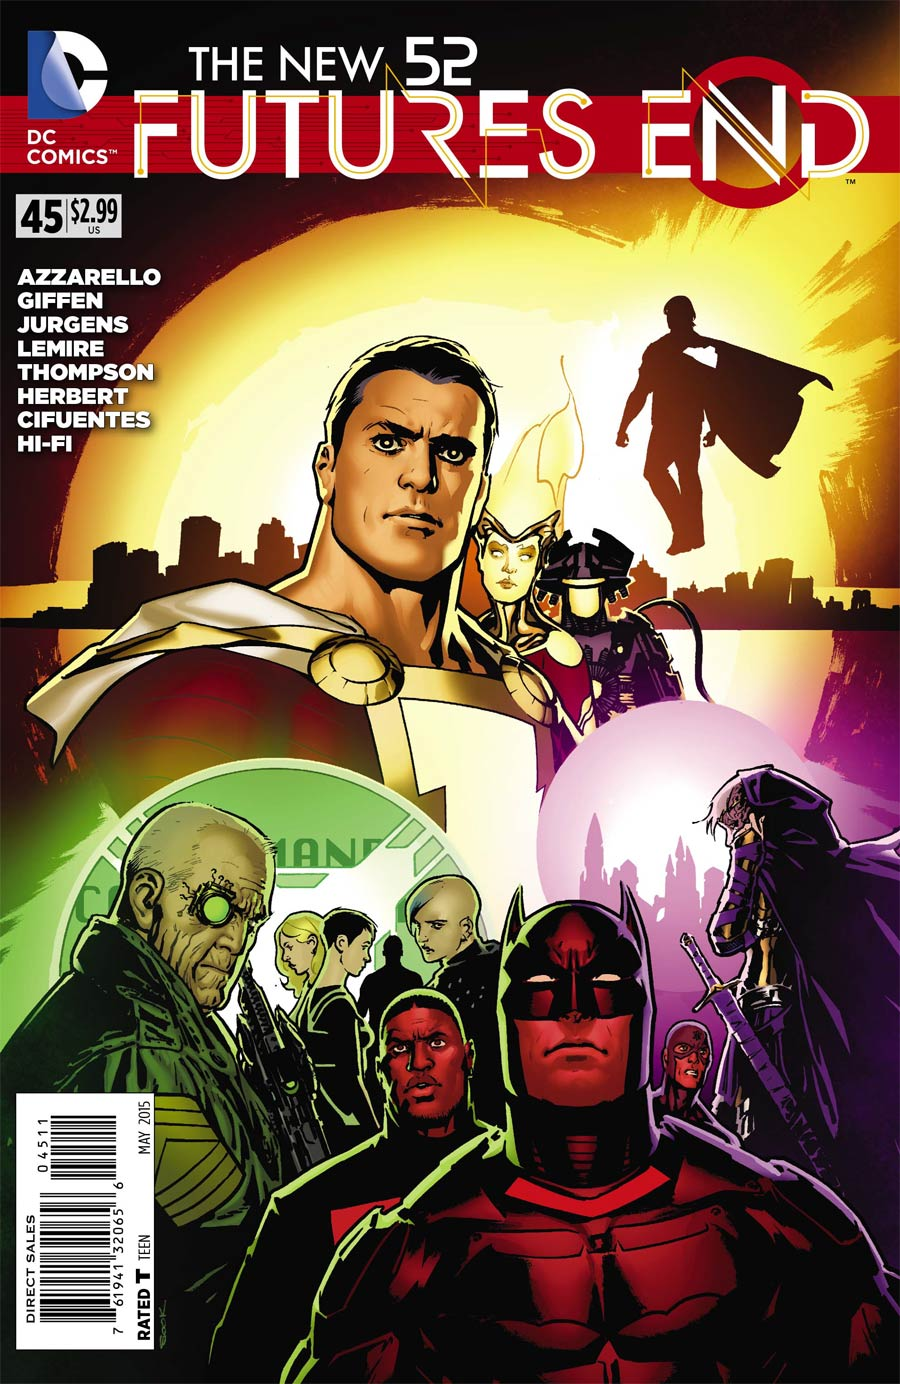 New 52 Futures End #45